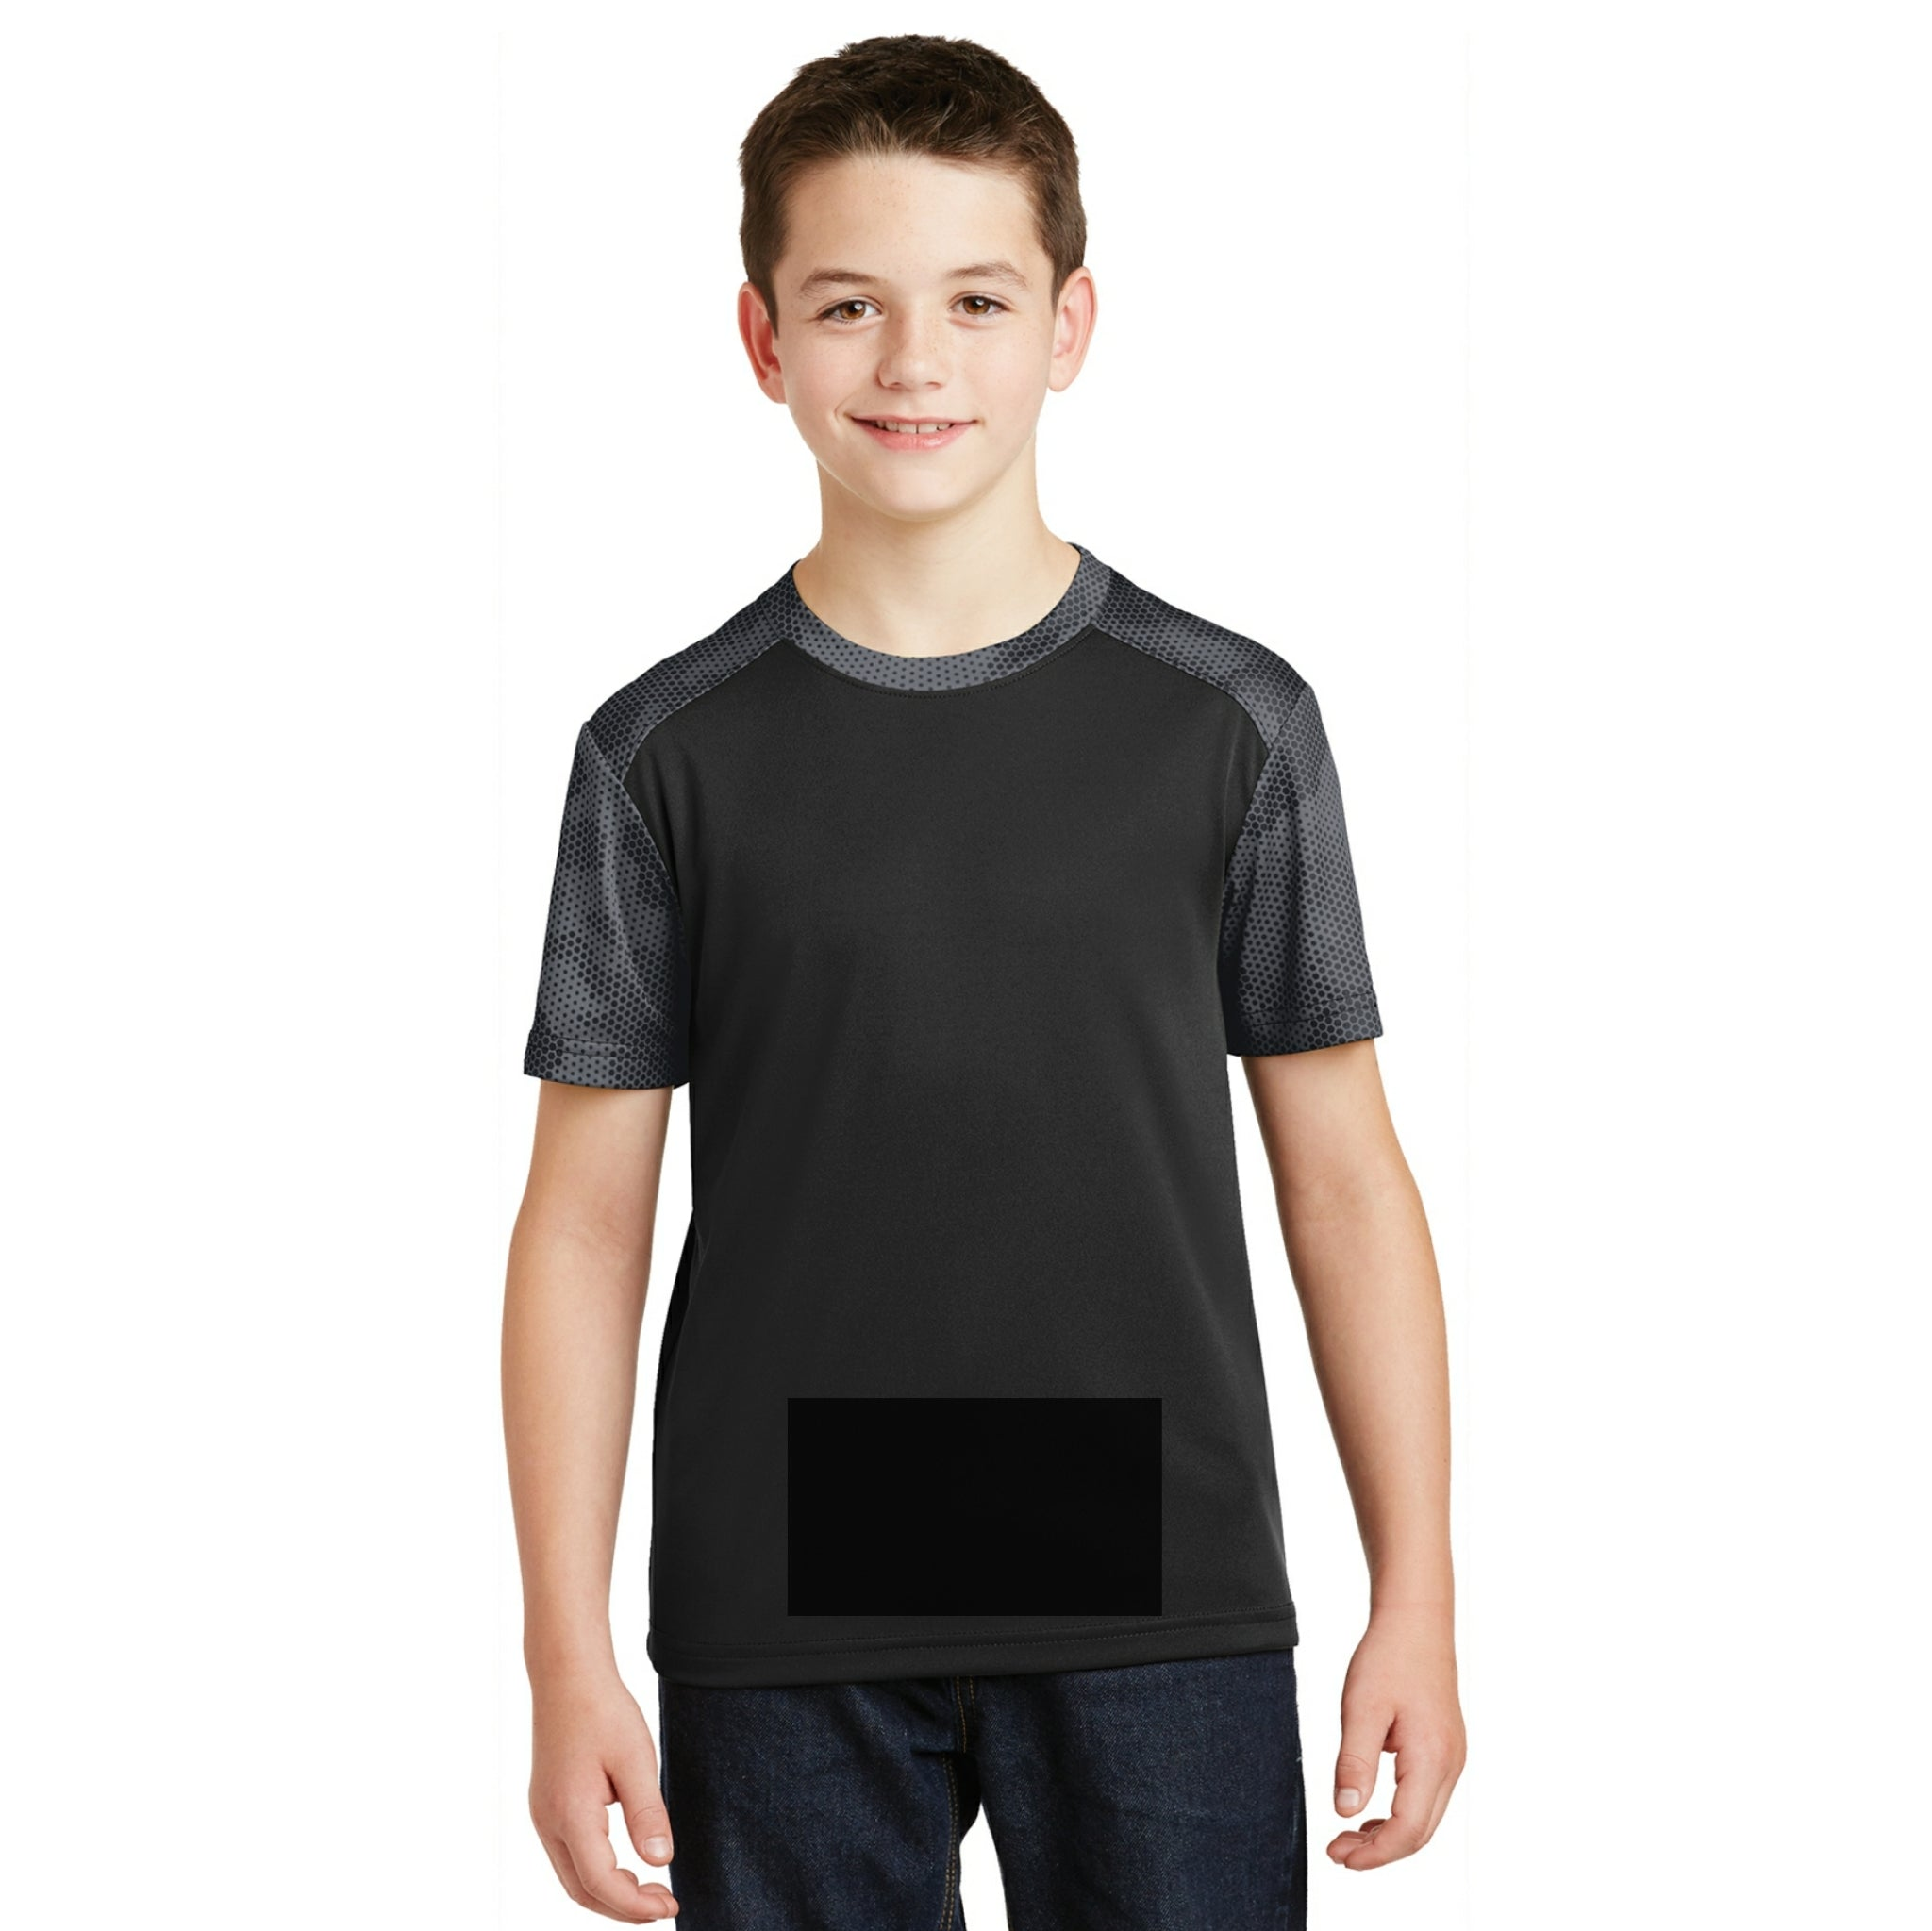 attached front panel camohex colorblock children's tee Black/Iron Gray Camohex